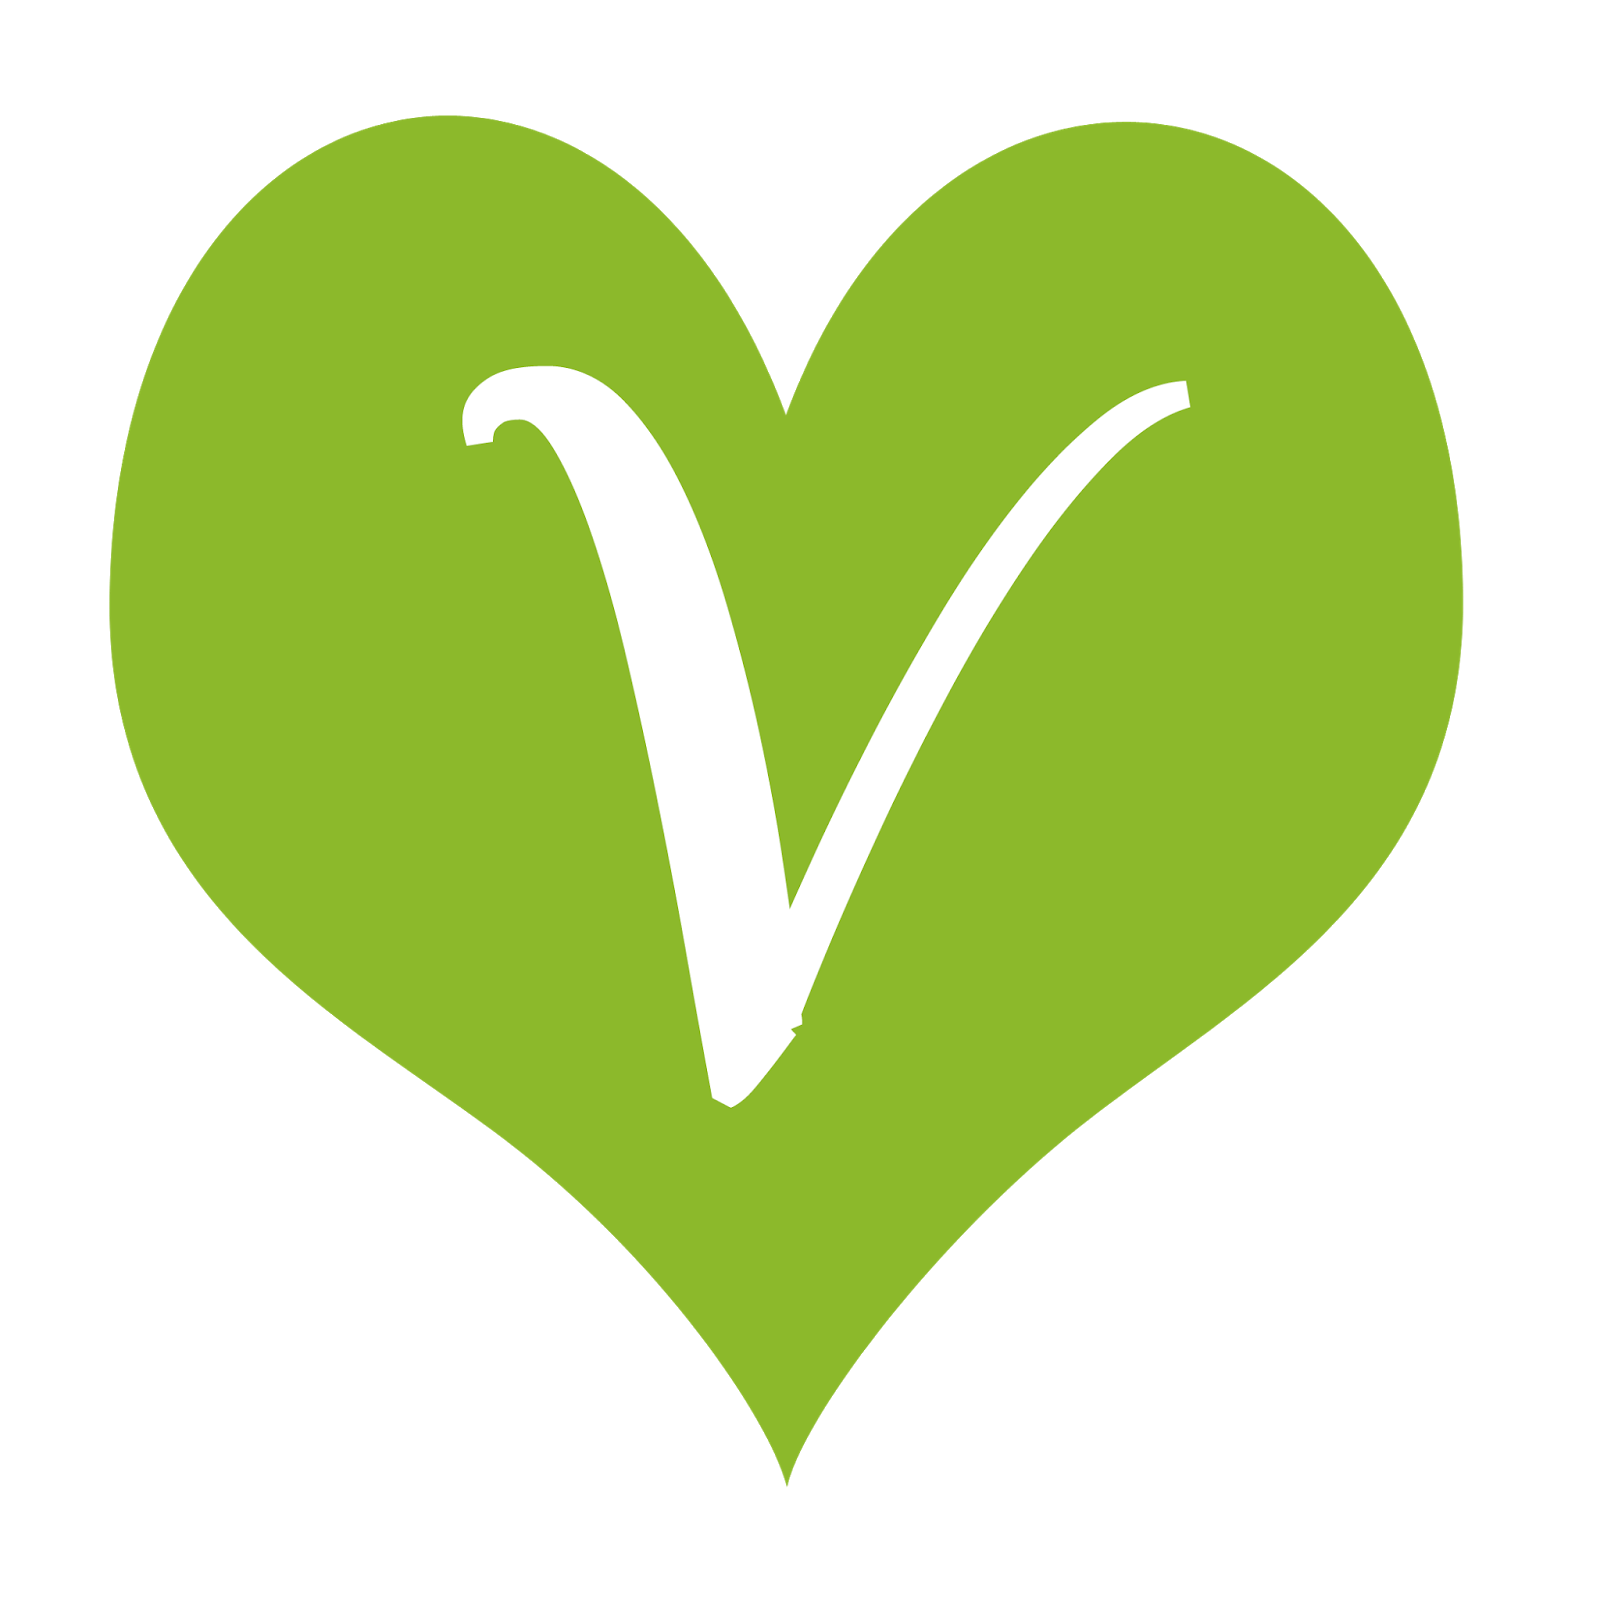 File:Vegetarian.svg - Wikimedia Commons